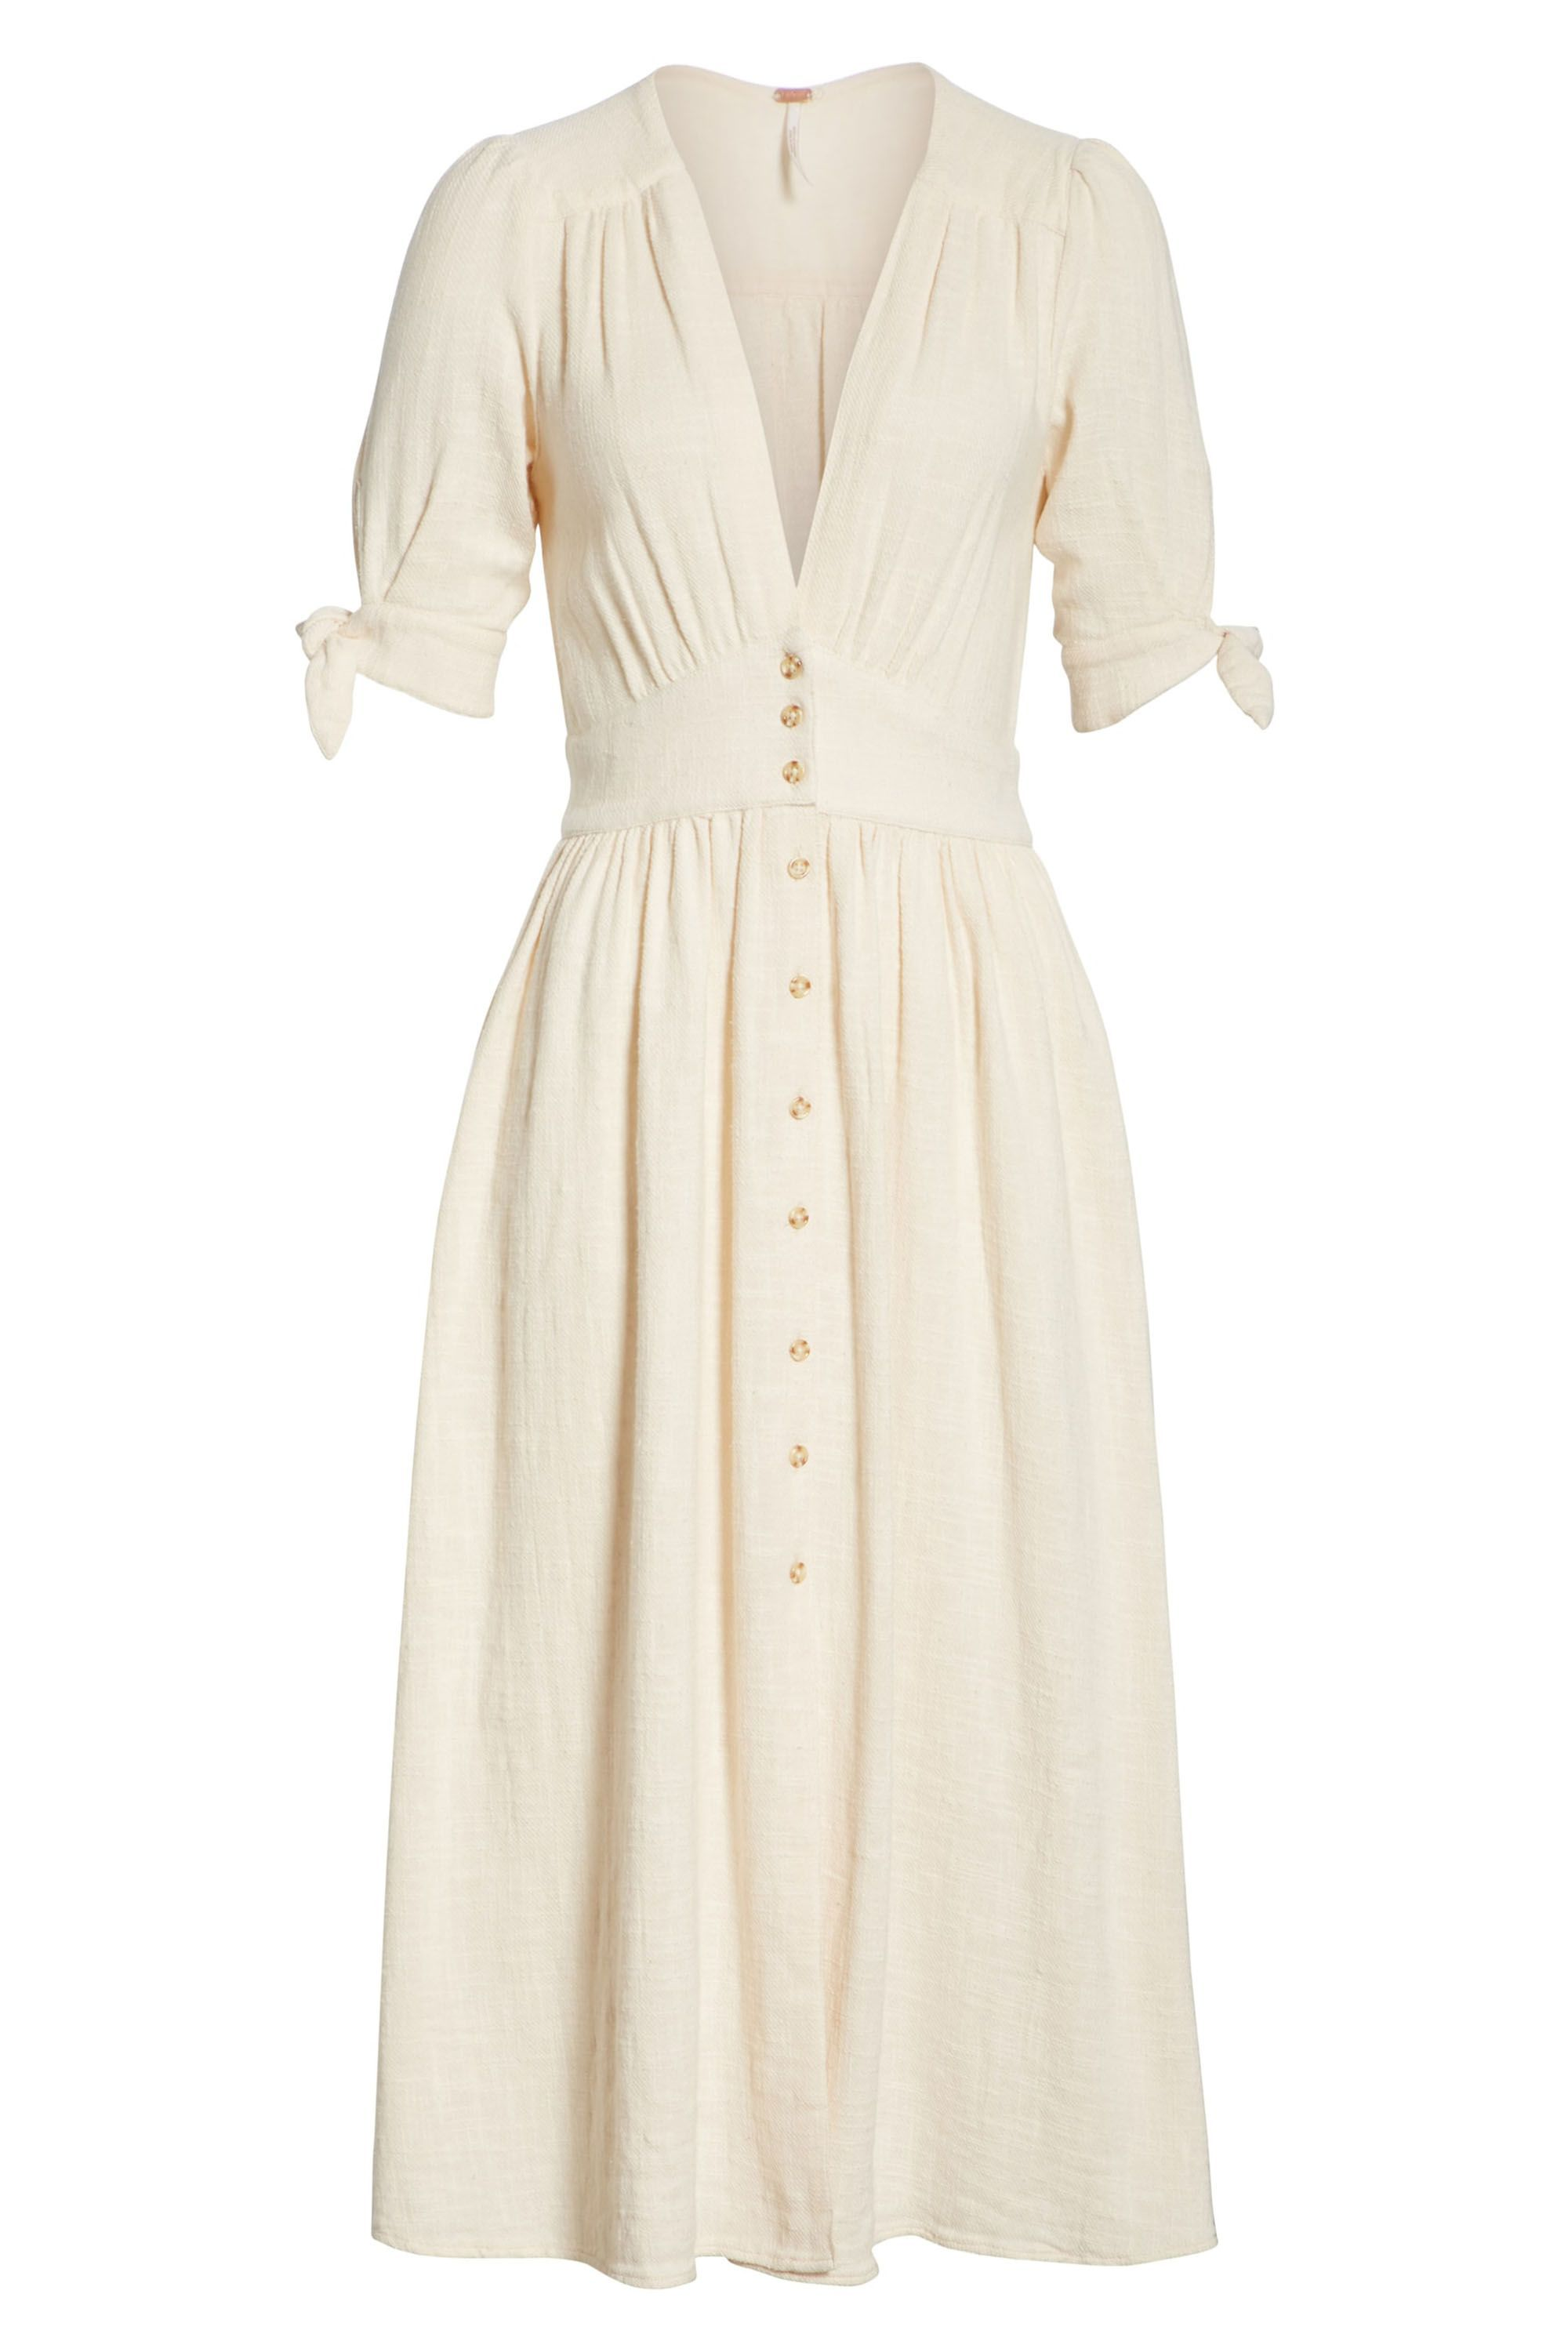 17 Fall Dresses We Love - Dresses for Work and Play at Every Price Point